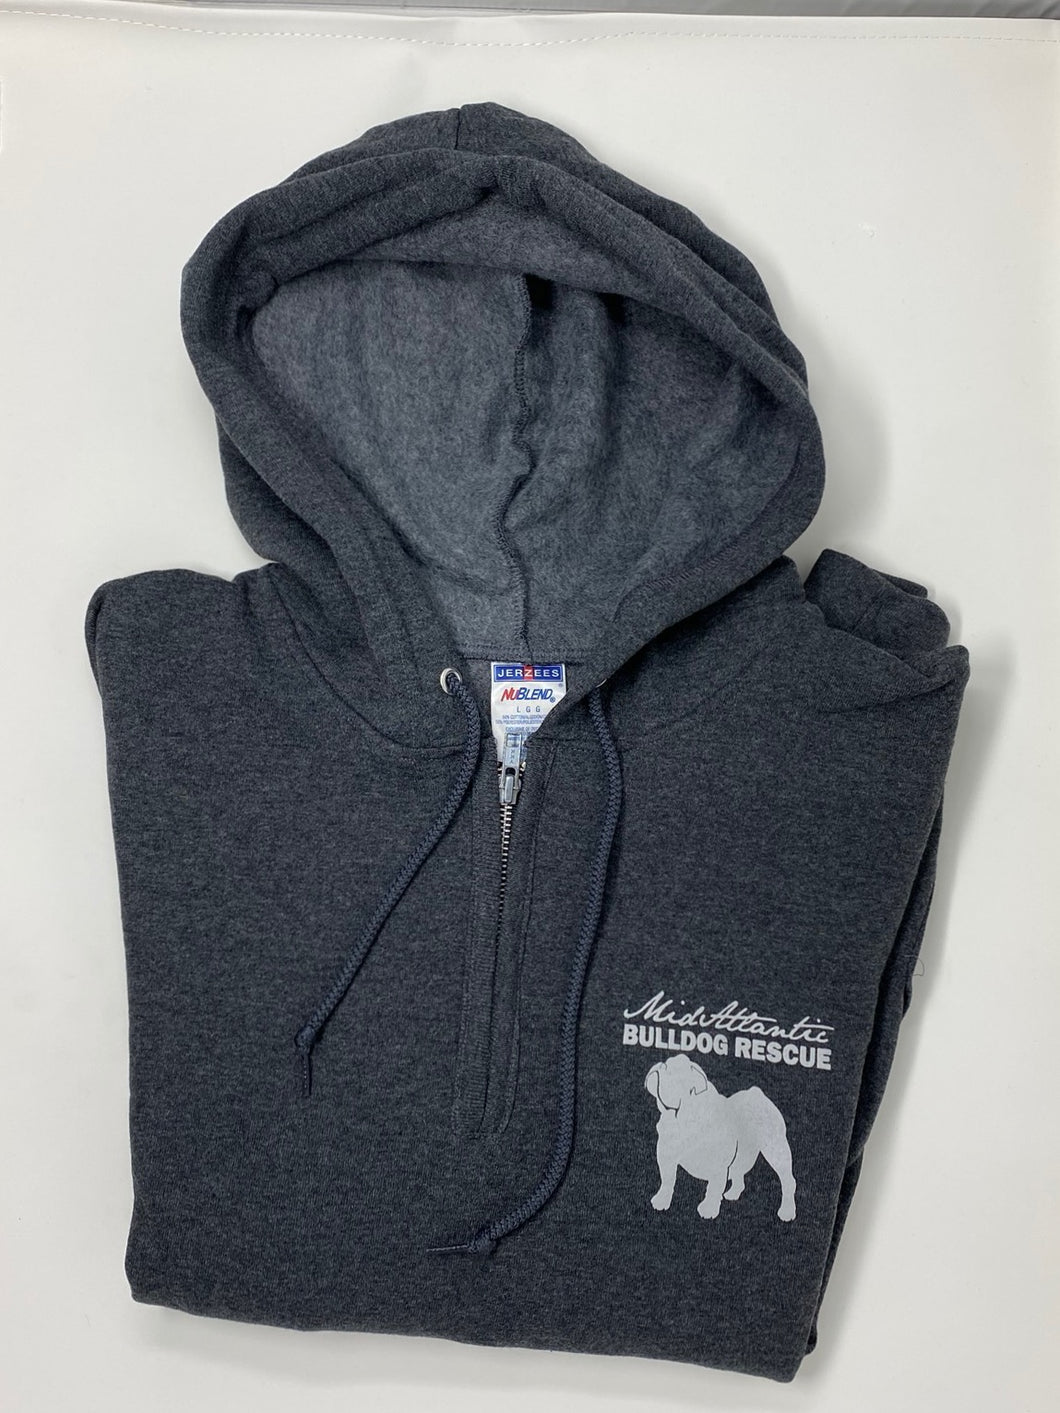 MidAtlantic Bulldog Rescue Hooded Sweatshirt - Grey